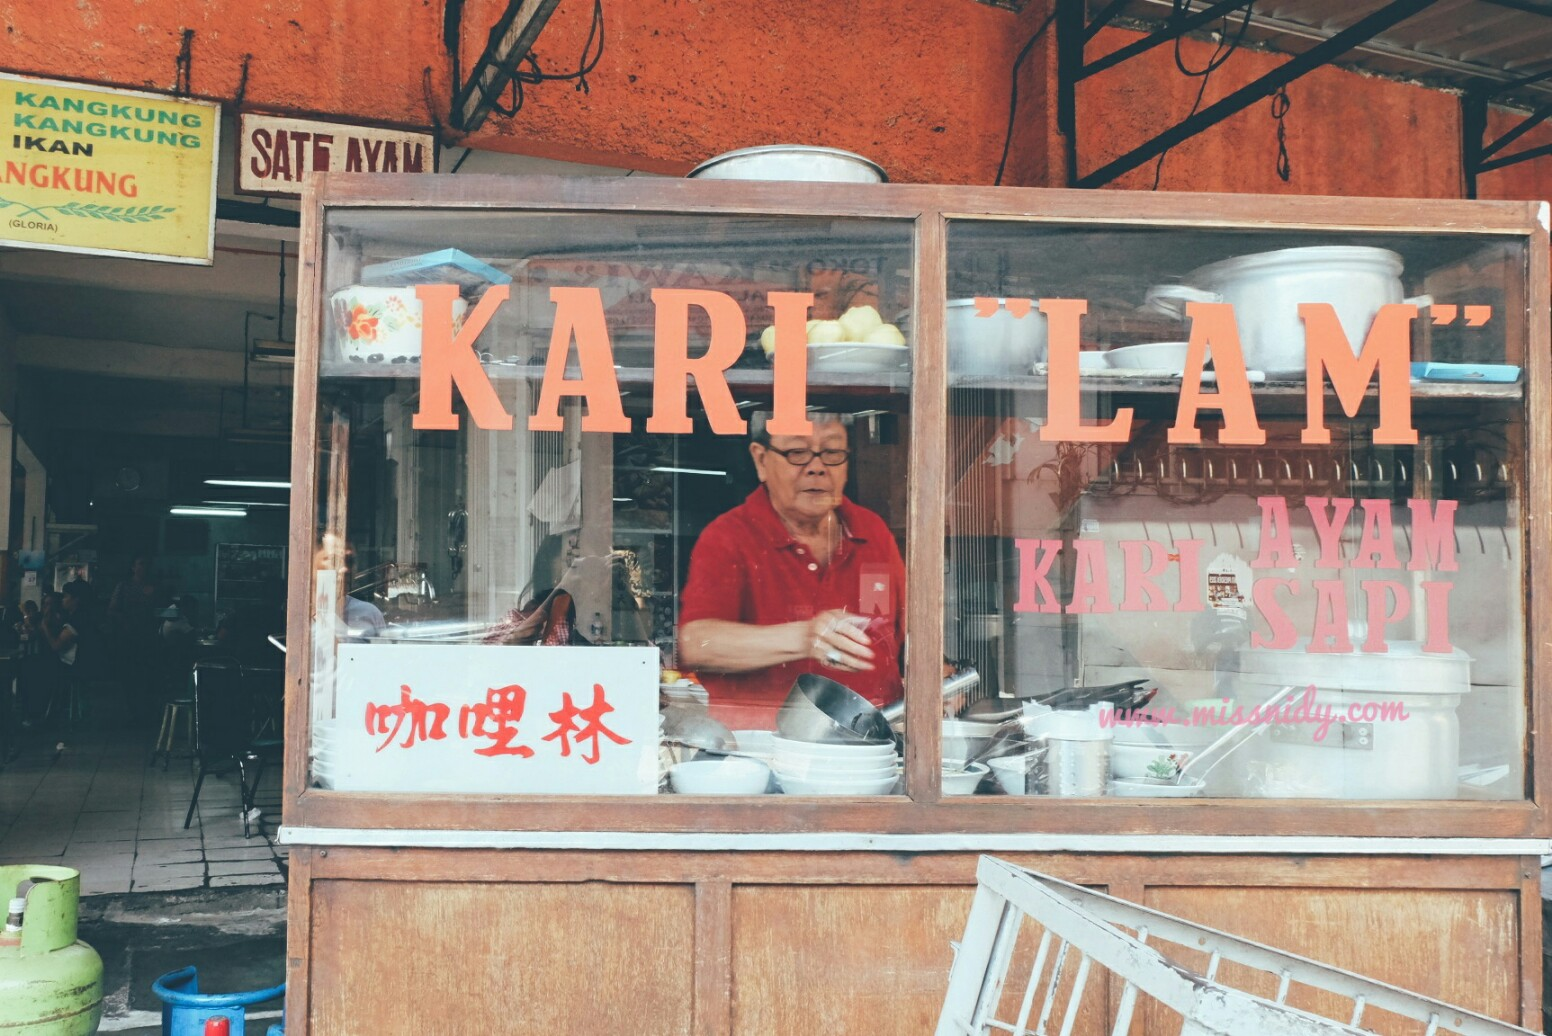 kari lam gang gloria review